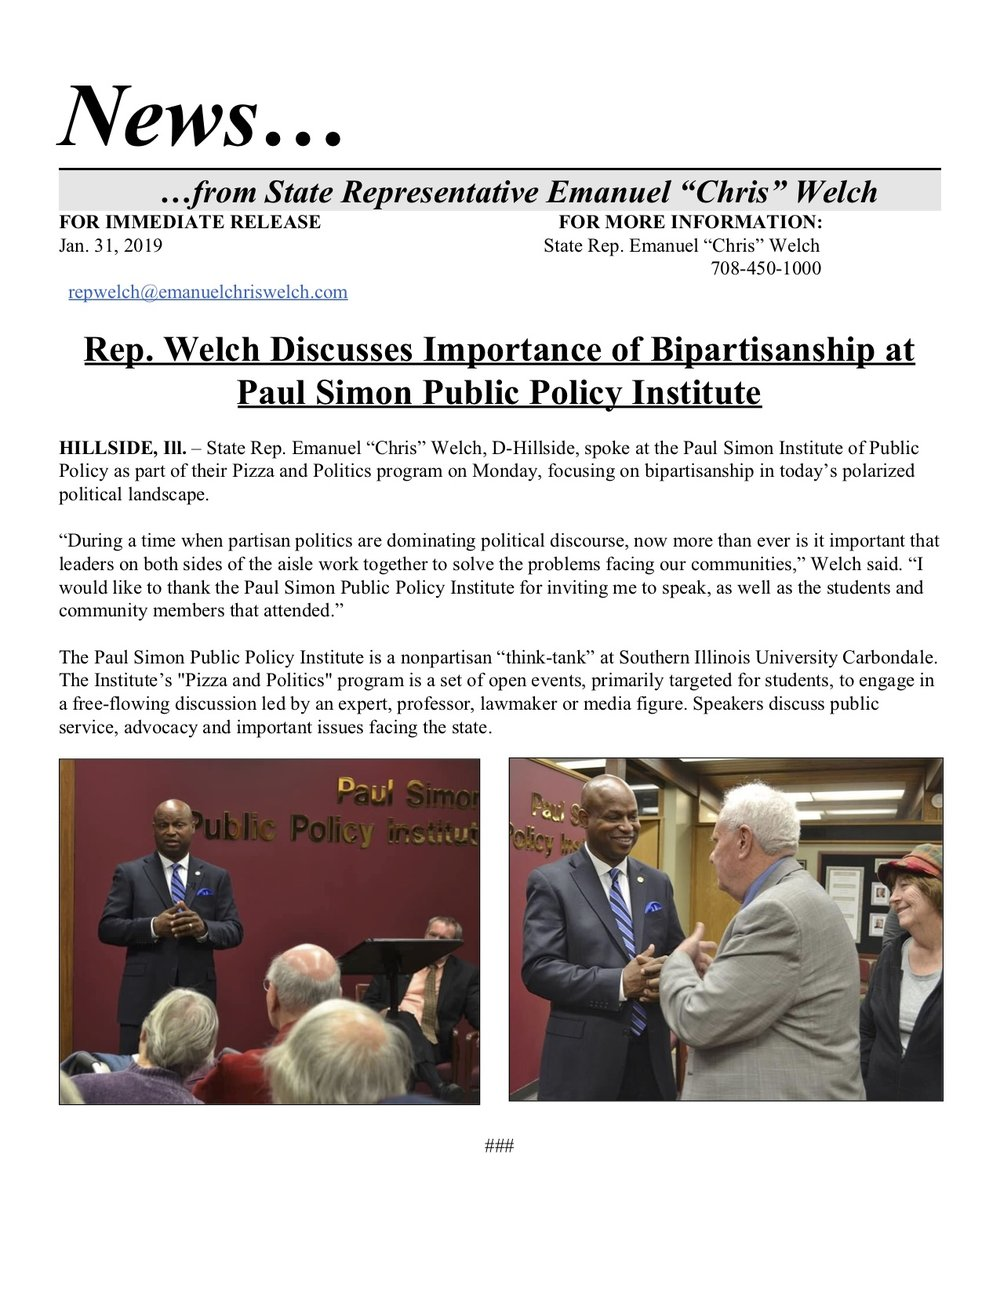 Rep. Welch Discusses Importance of Bipartisanship at Paul Simon Public Policy Institute  (January 31, 2019)